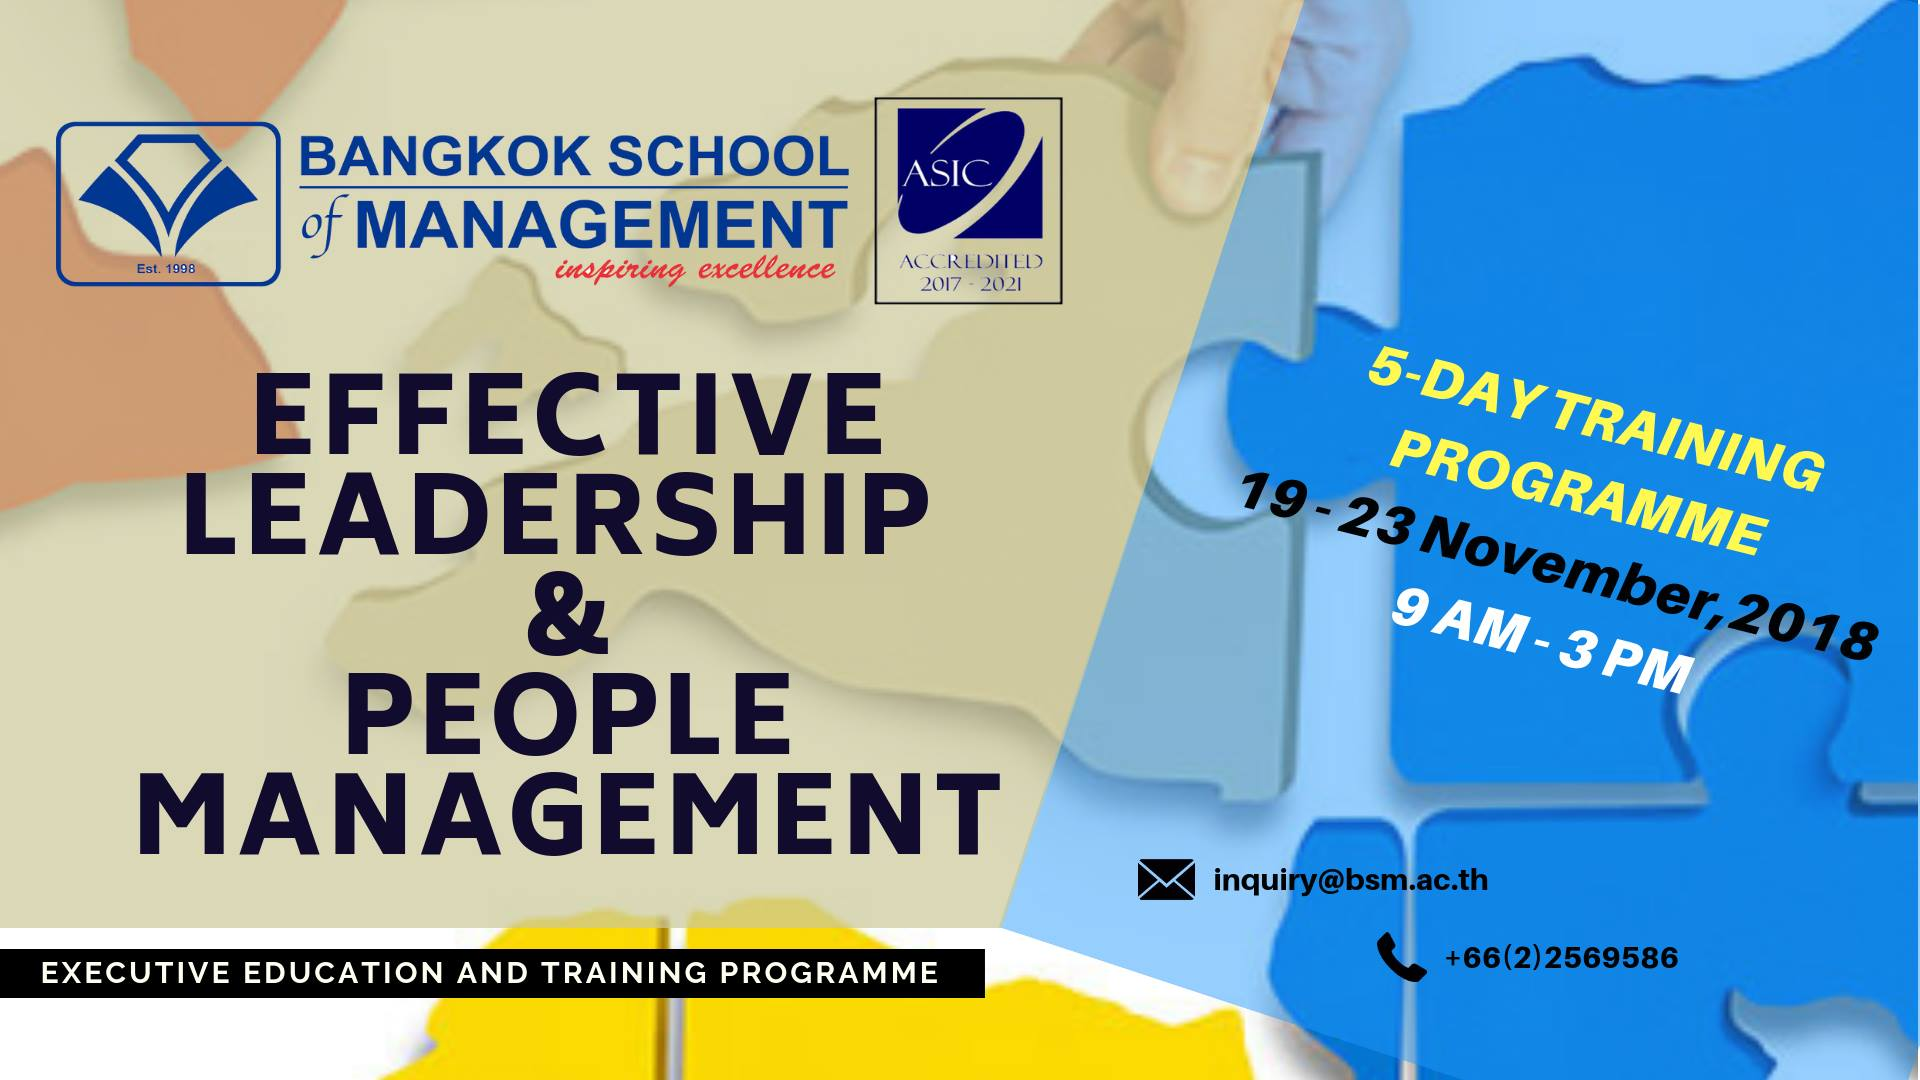 Date: November 19 – 23 Effective Leadership & People Management